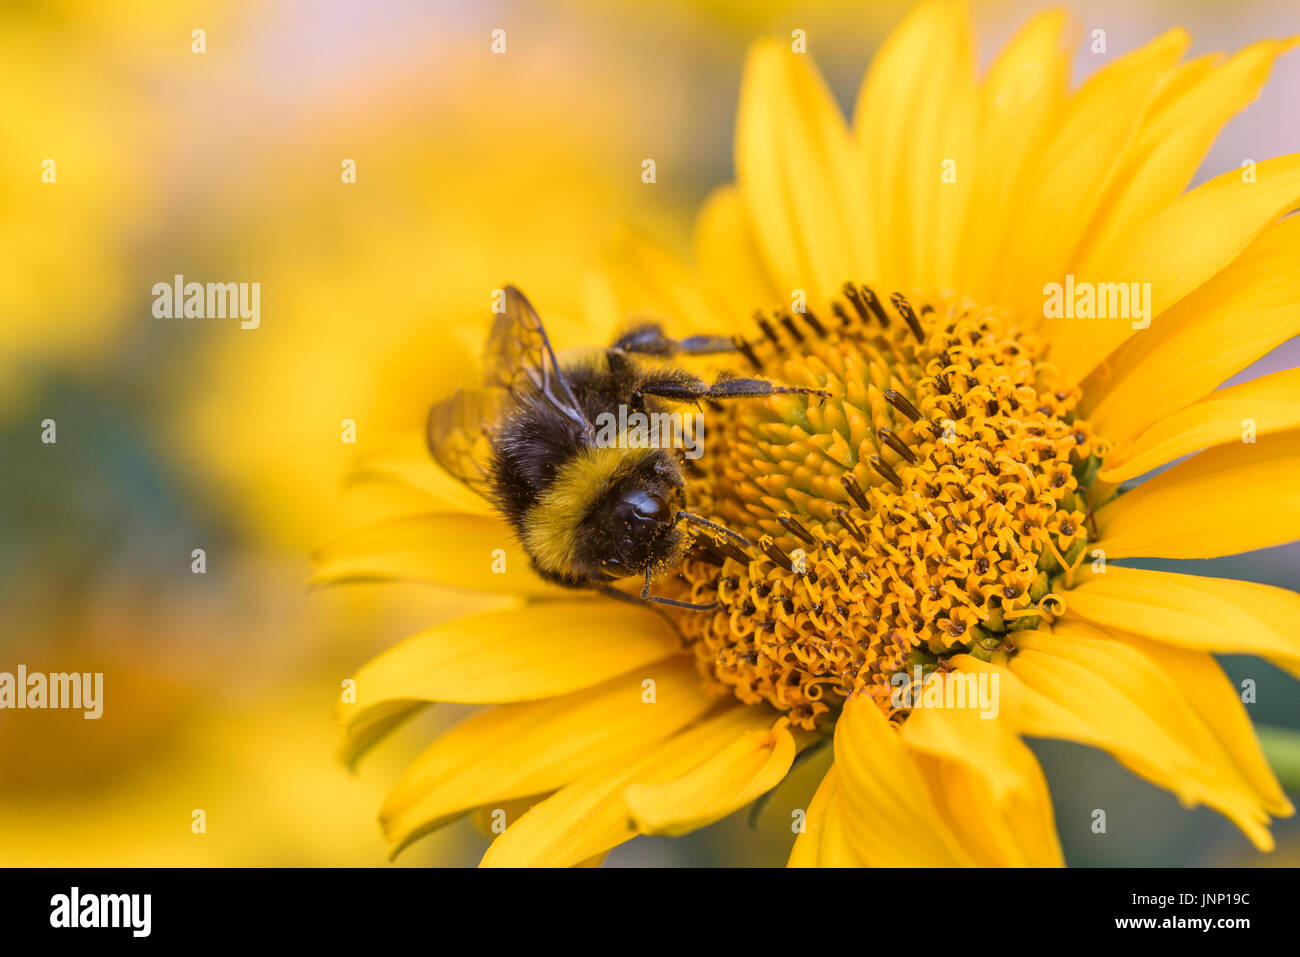 Busy bee on yellow flower, pollination. Active pollinator. - Stock Image